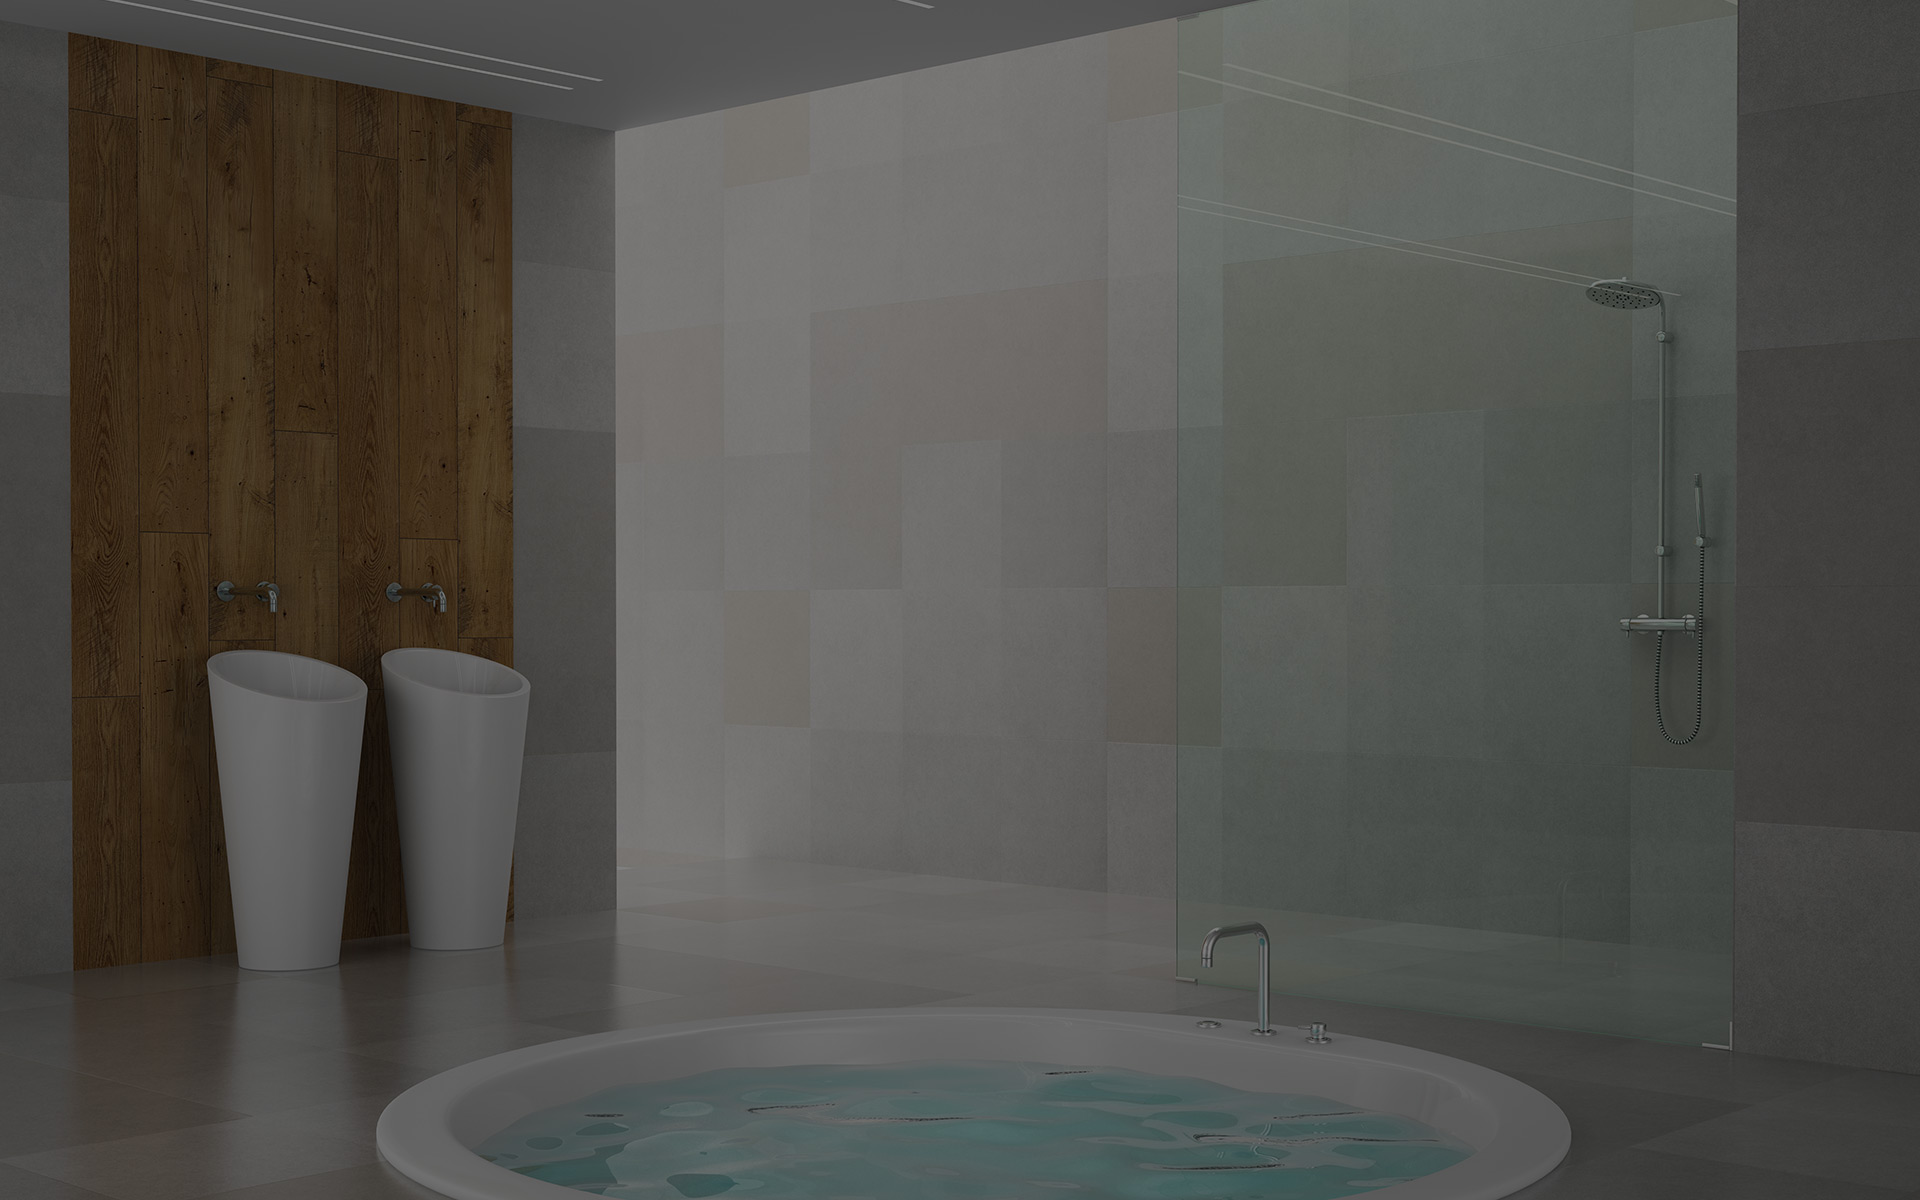 Frosted Window Film for Safety and Privacy